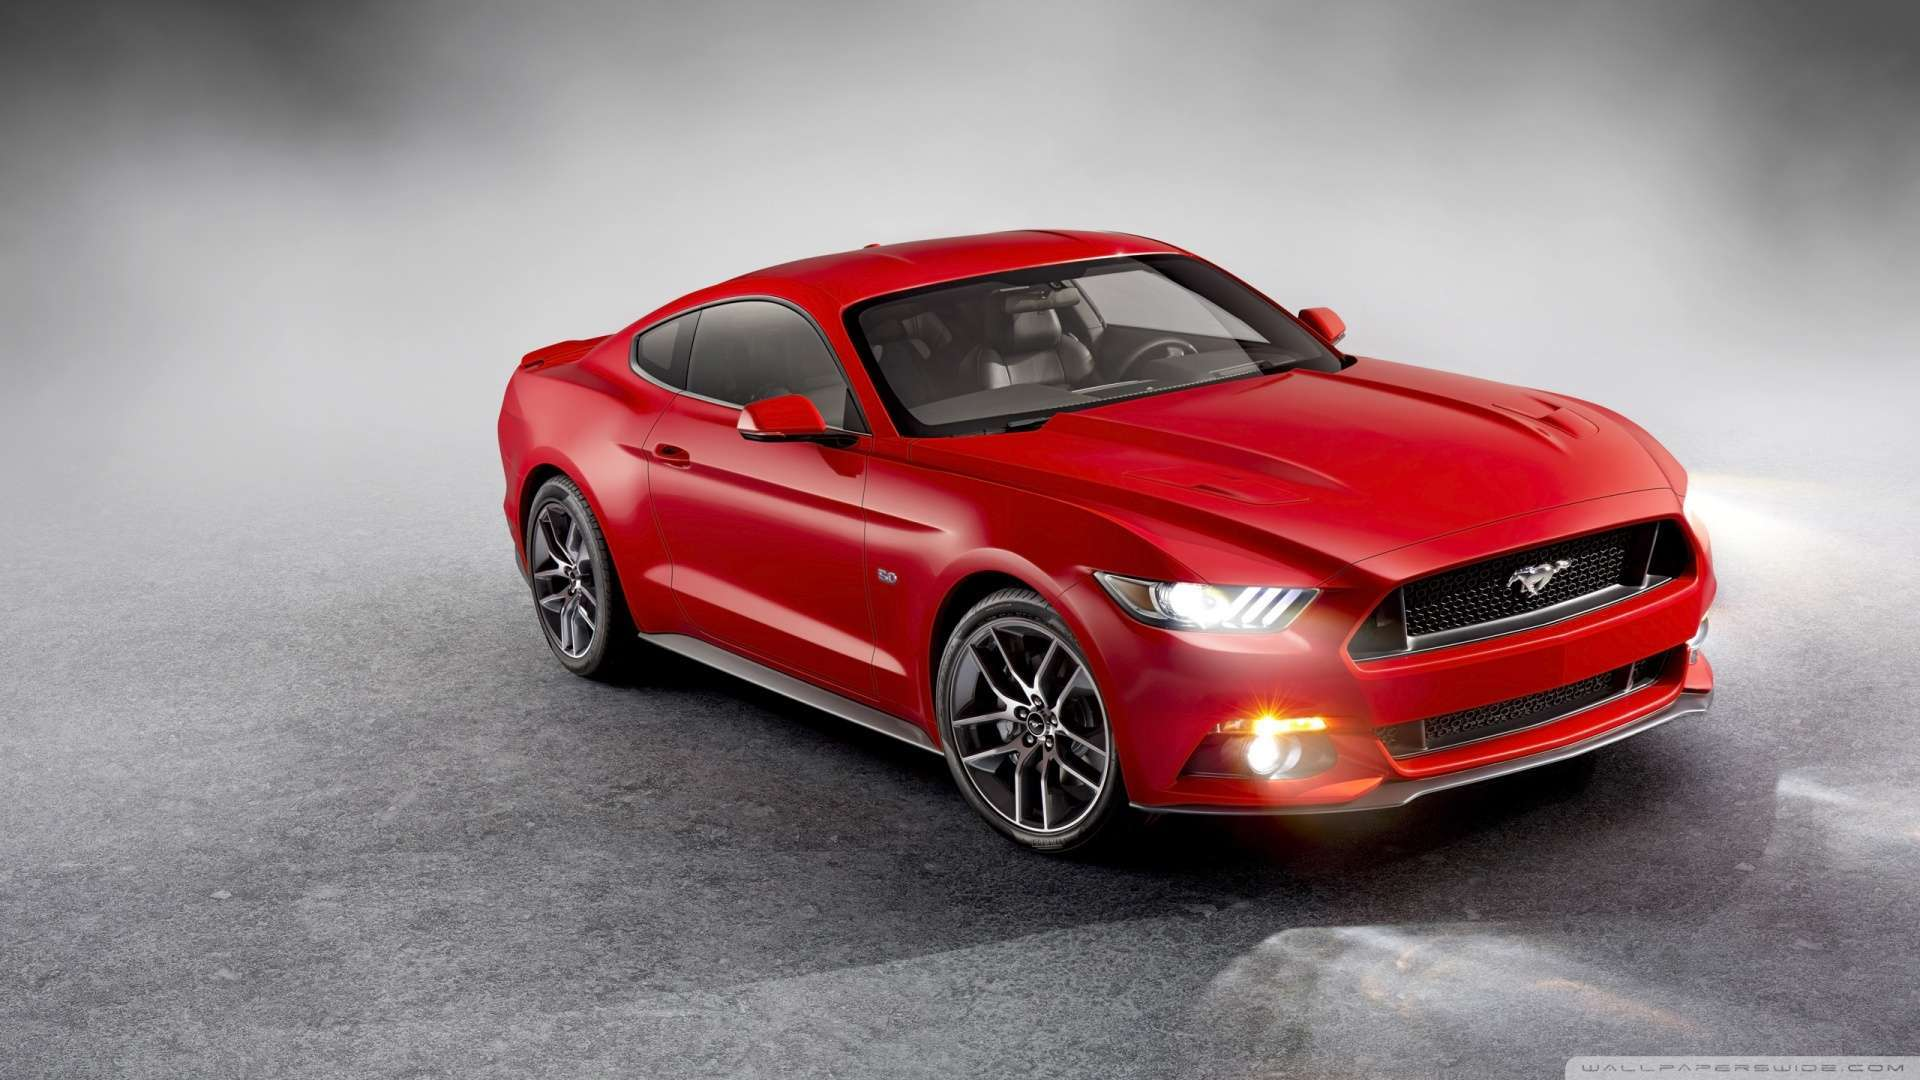 ford mustang 2015 wallpaper 1080p hd is a fantastic hd wallpaper for 1920x1080